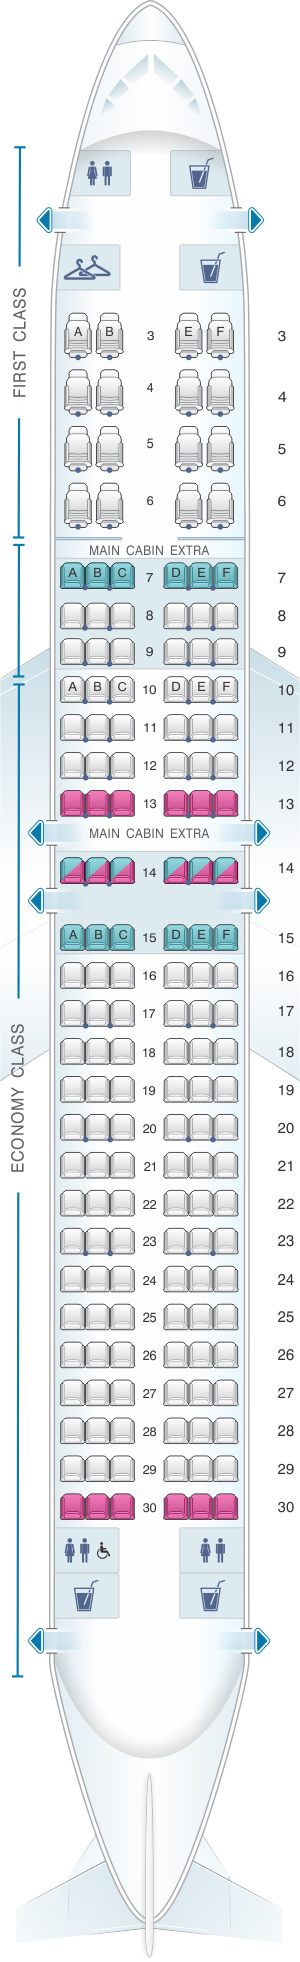 Seat Map For American Airlines Boeing B737 800